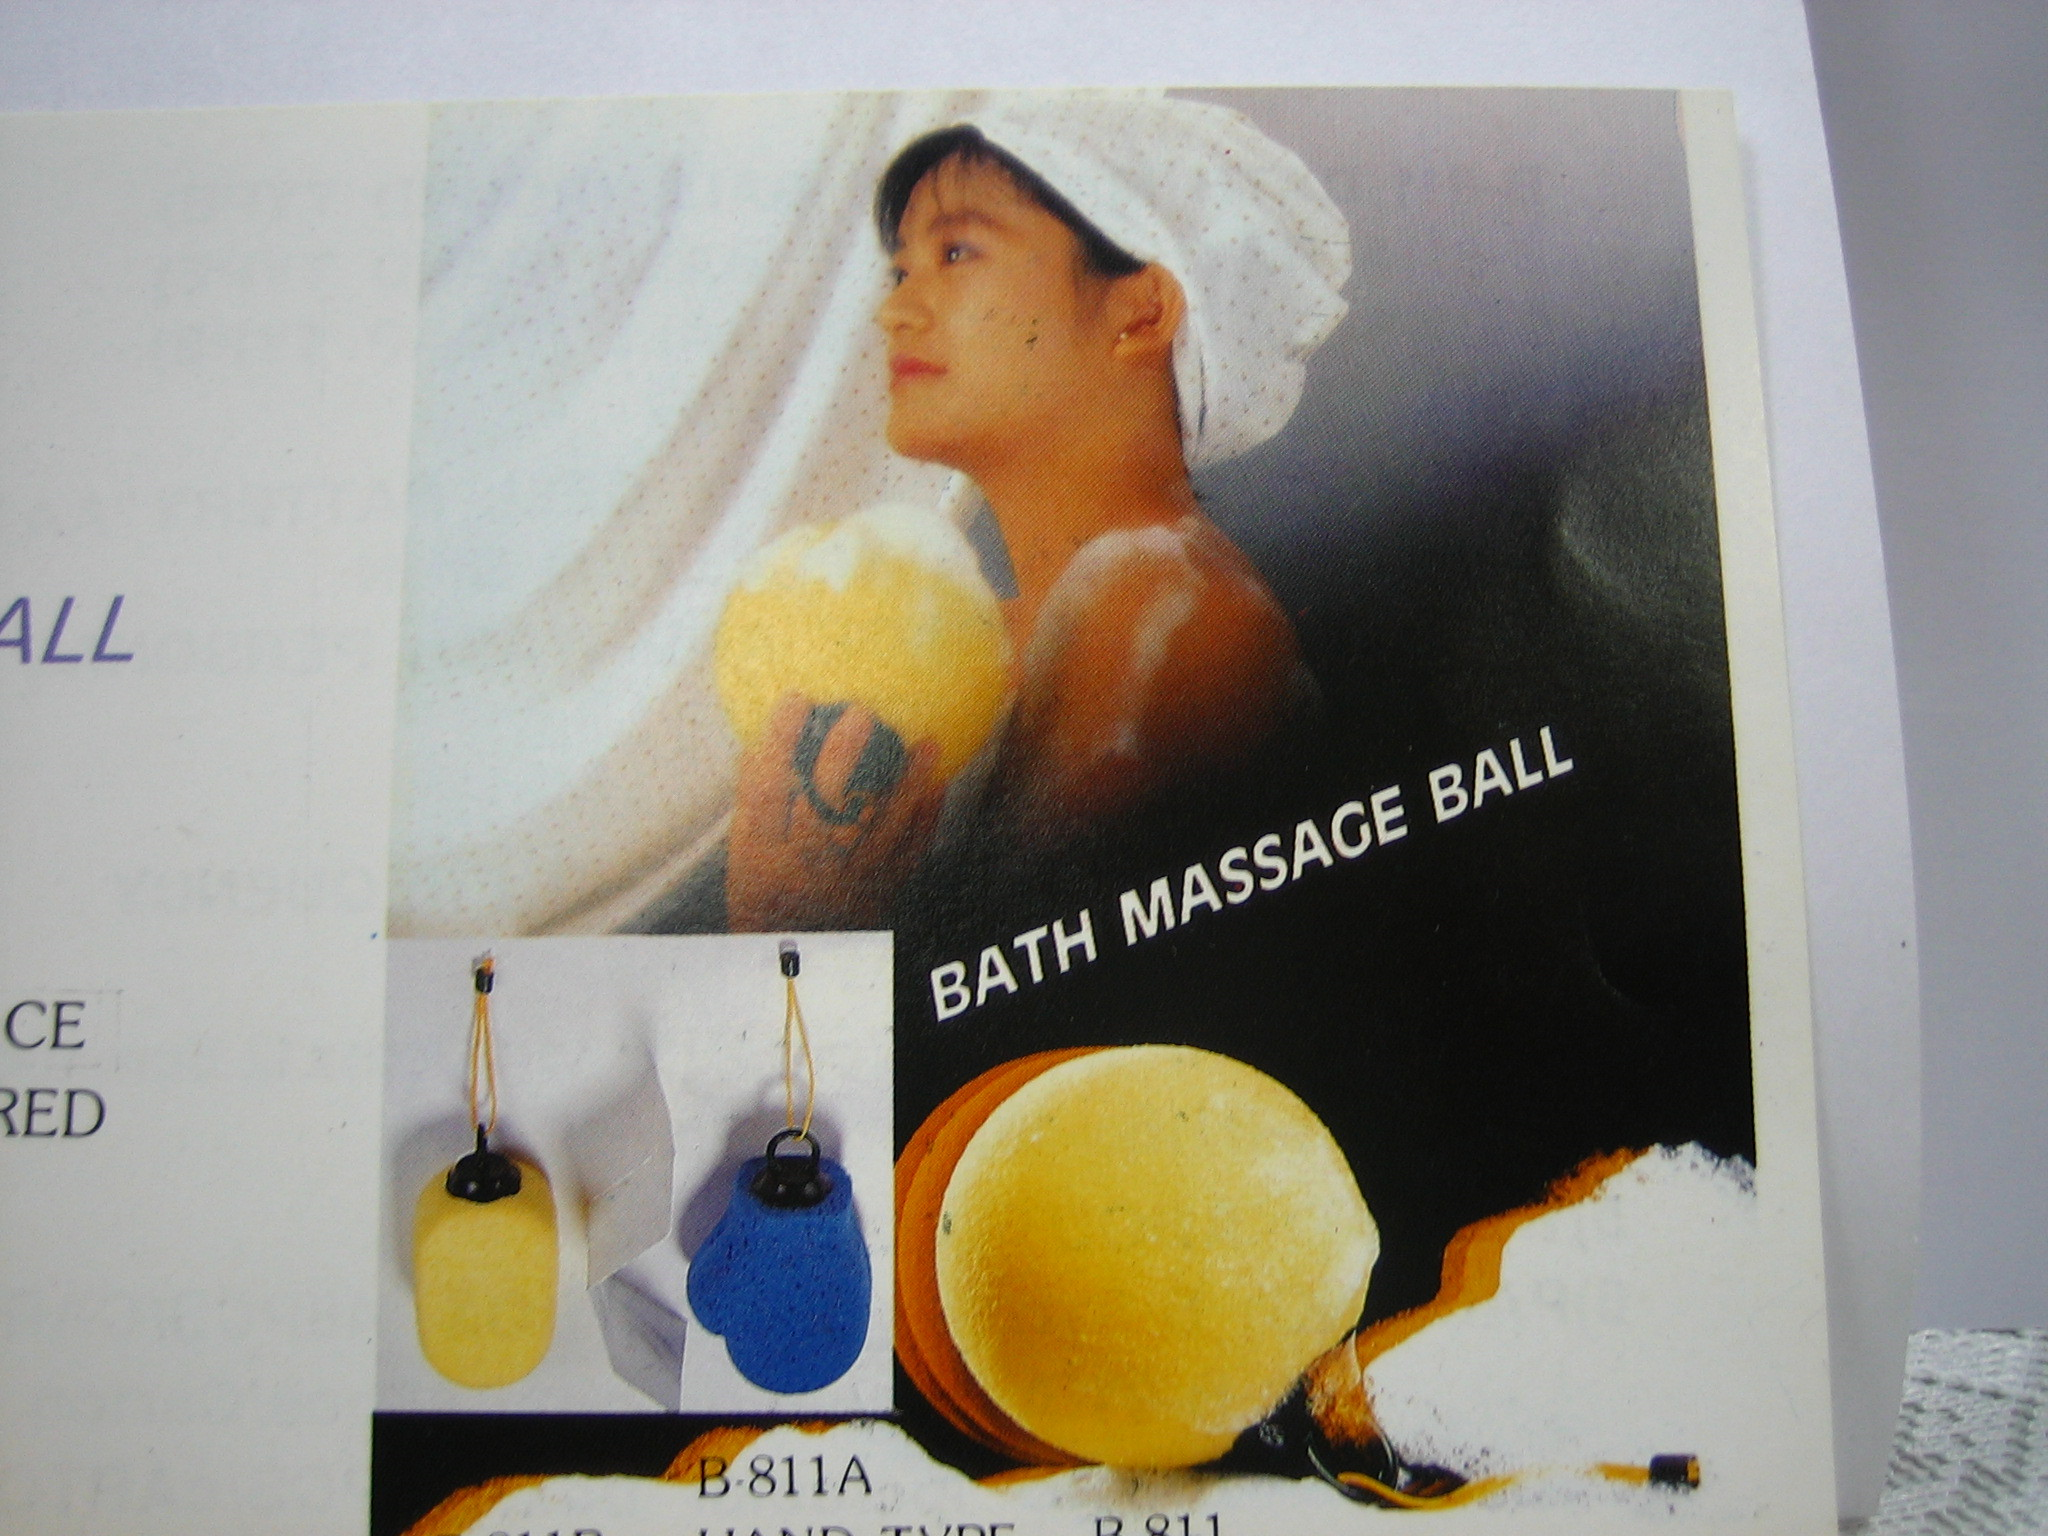 Bath massage ball